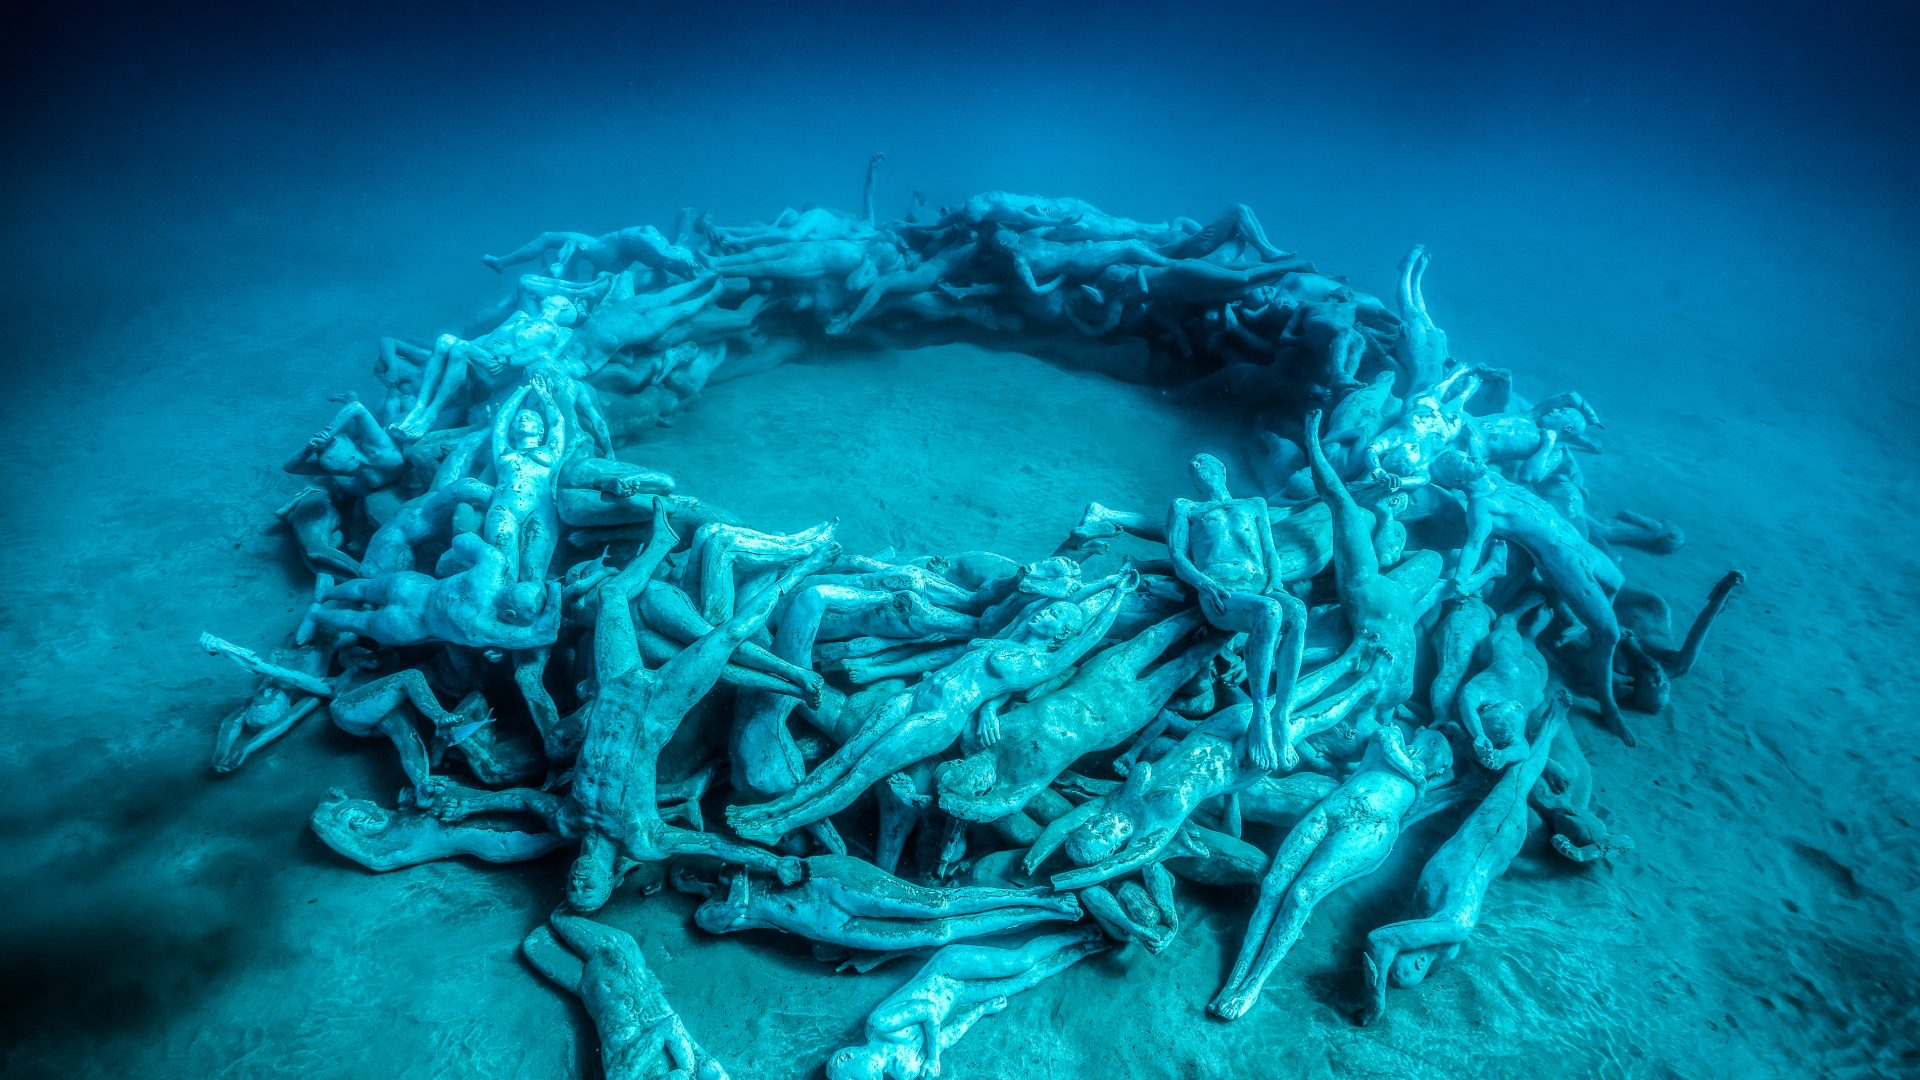 One of the pieces (The human gyre) in the underwater sculptural piece known as Vicissitudes by British artist Jason deCaires Taylor.